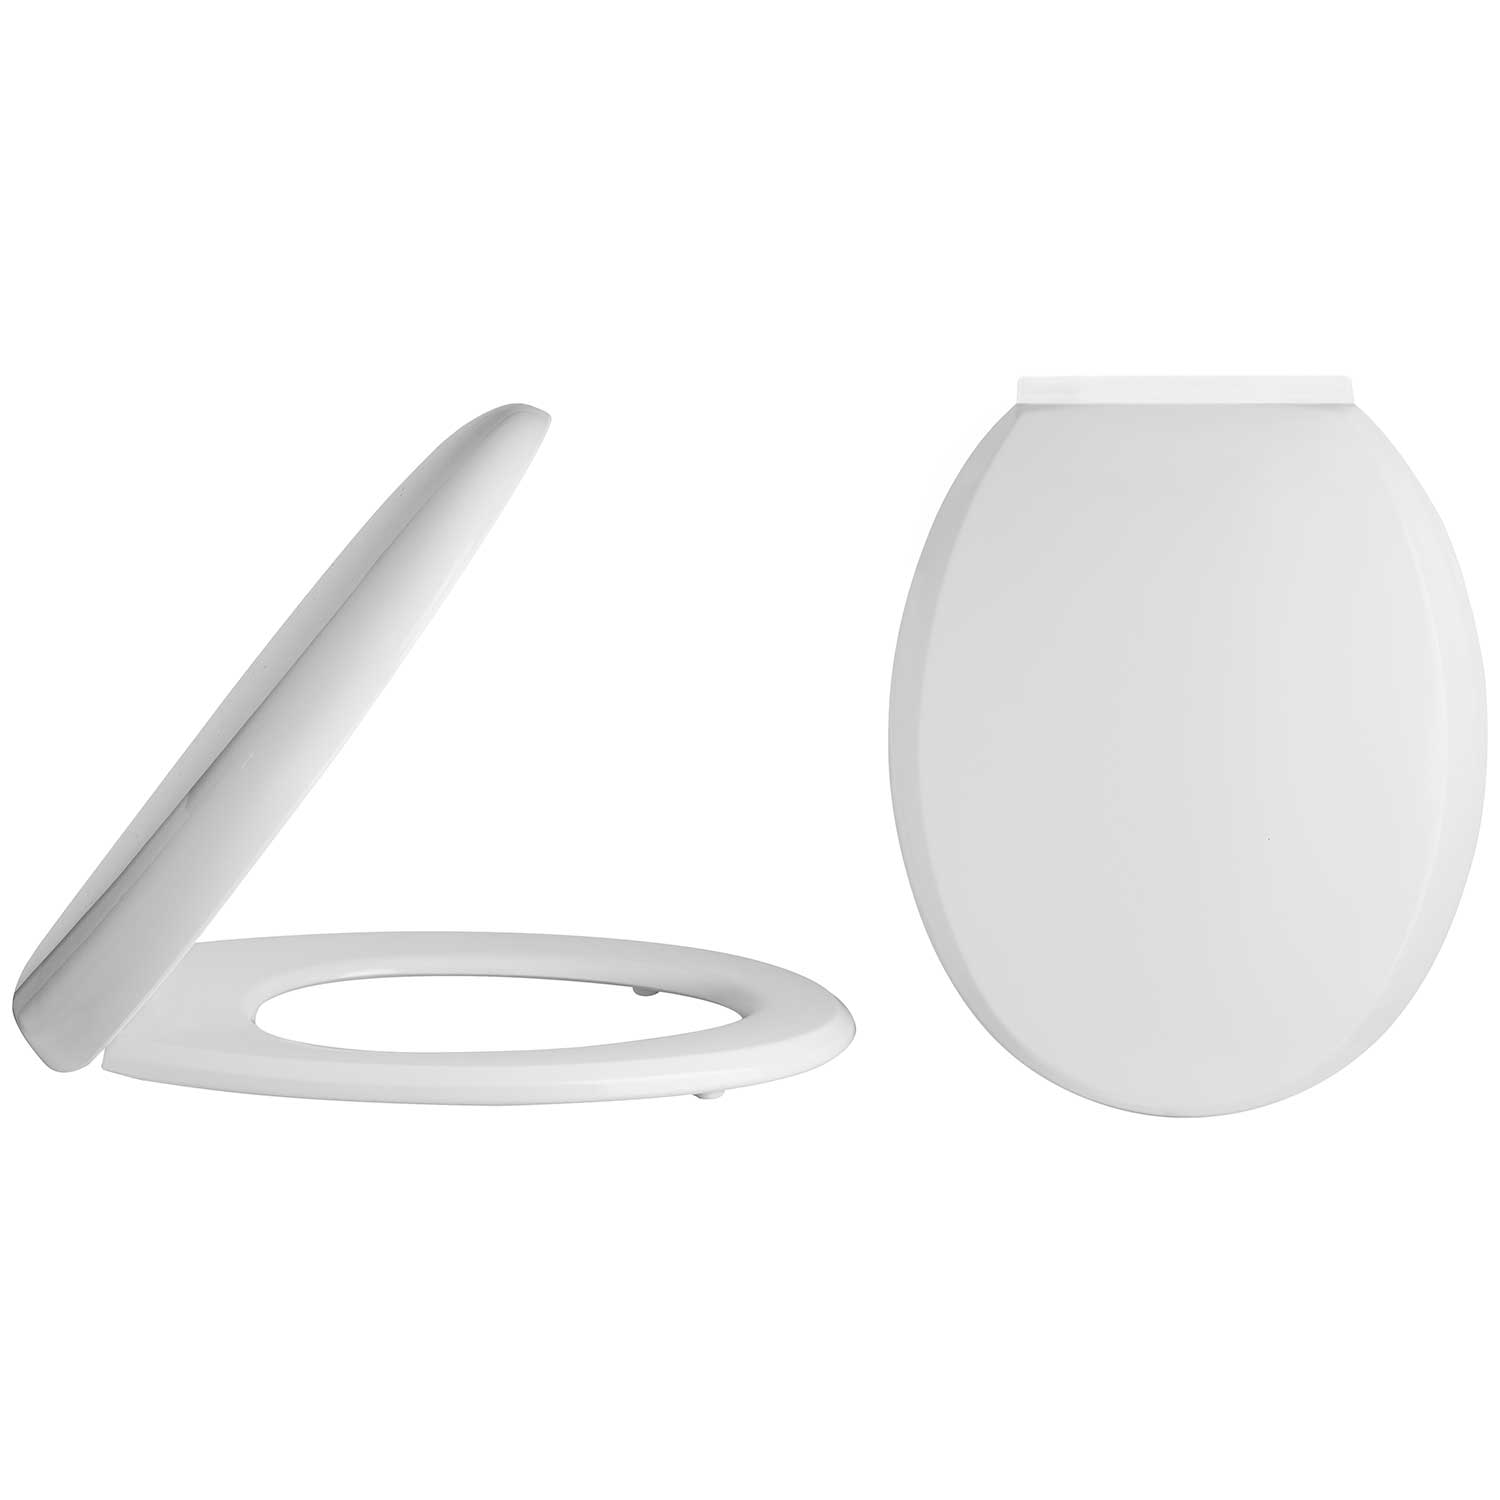 Lauren Standard Round Soft Close Toilet Seat With Top Fix Hinges NTS008